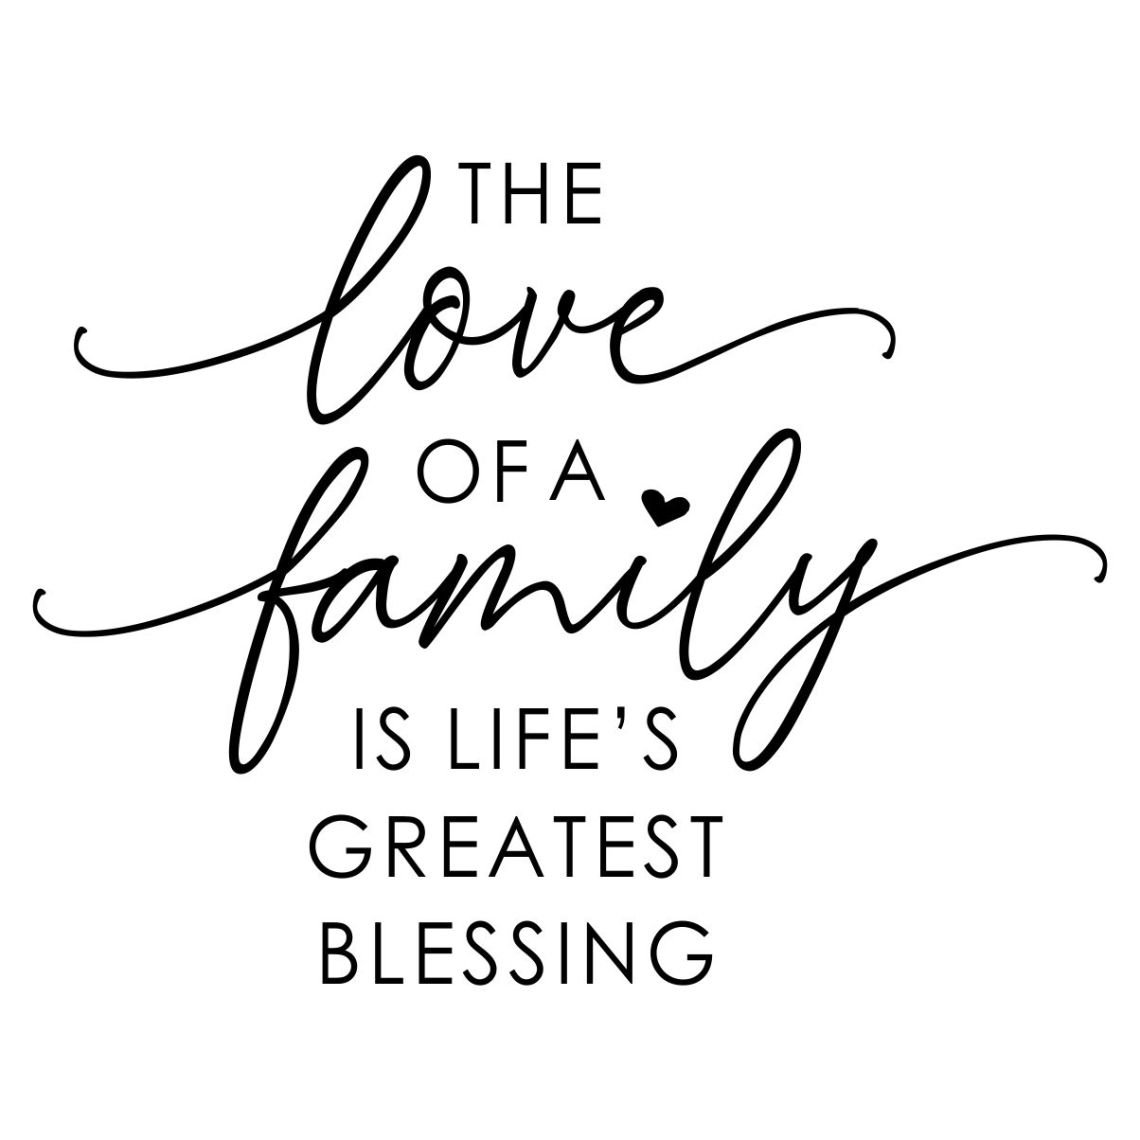 Download THE LOVE OF A FAMILY IS LIFES GREATEST BLESSING - SIZE- 11 ...